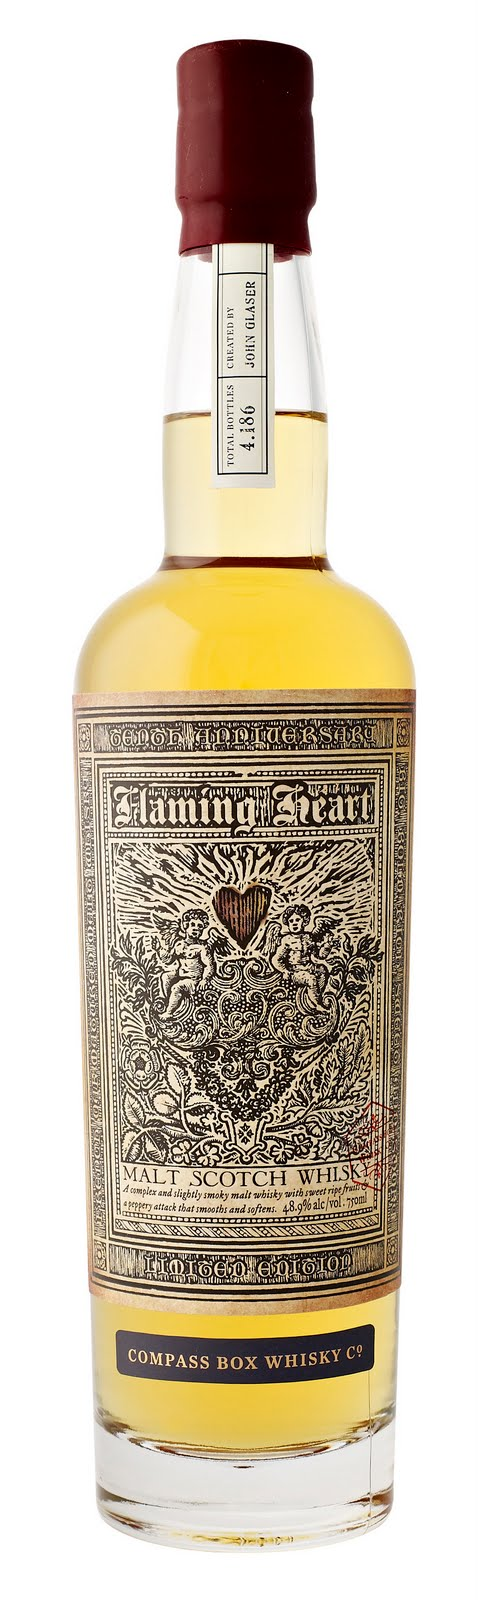 labelling heart. Flaming Heart – Compass Box